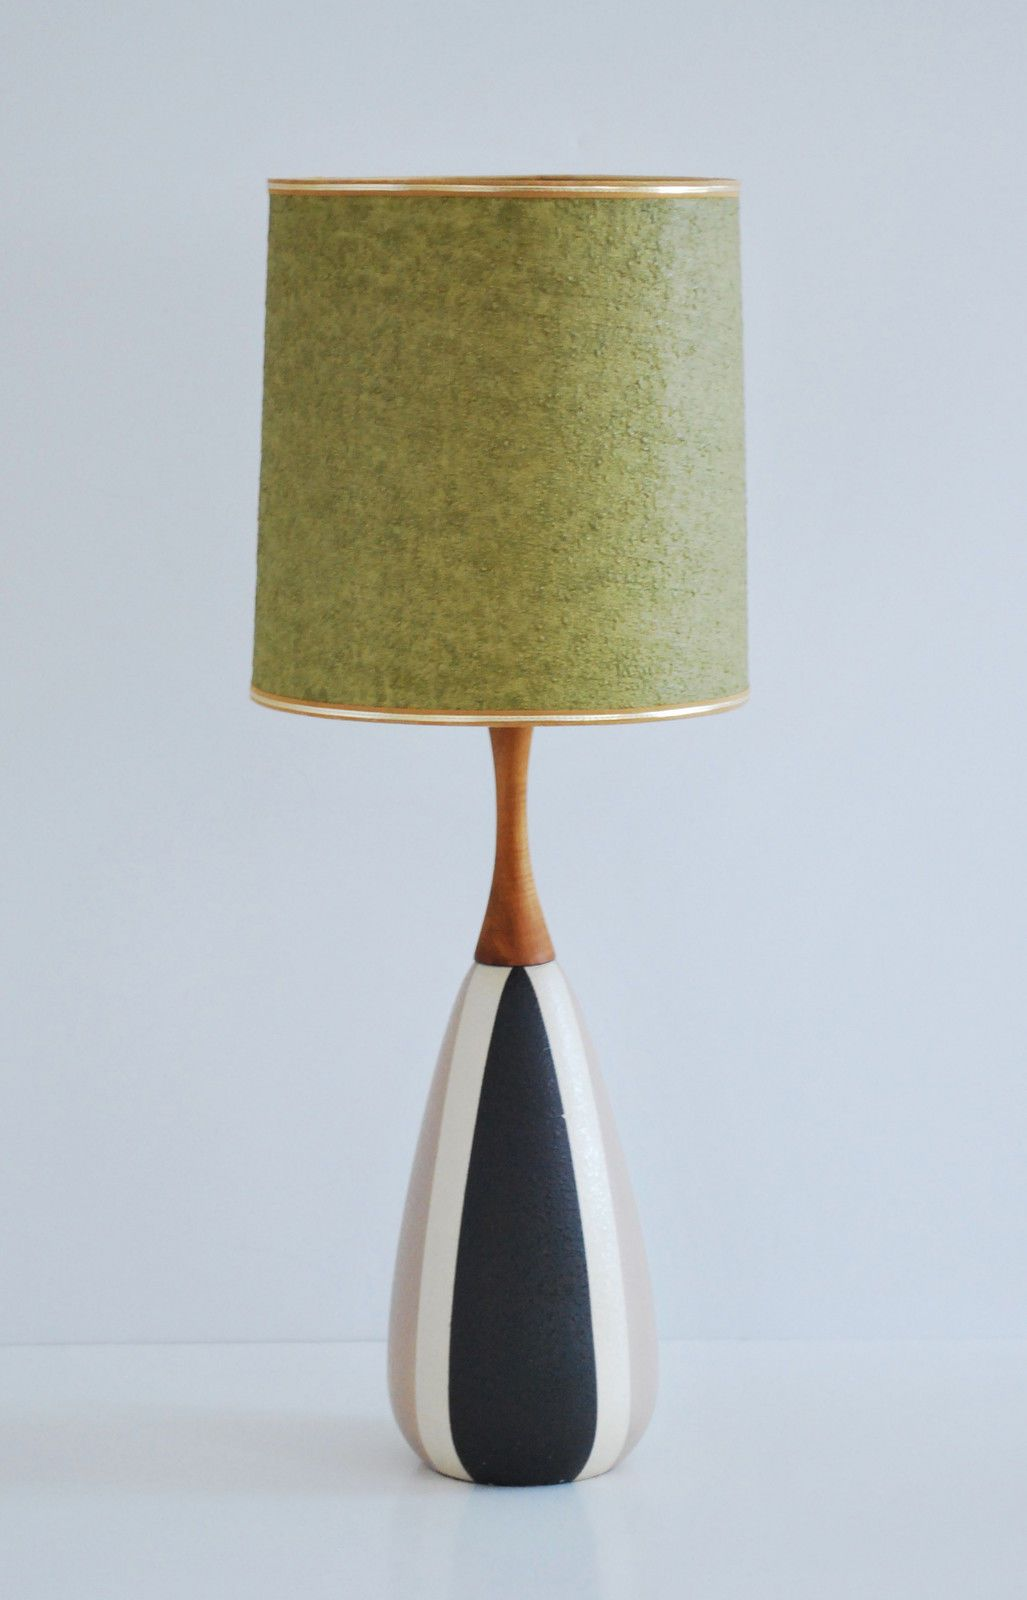 Mid century modern vintage danish ceramic teak table lamp ebay mid century modern vintage danish ceramic teak table lamp ebay geotapseo Image collections